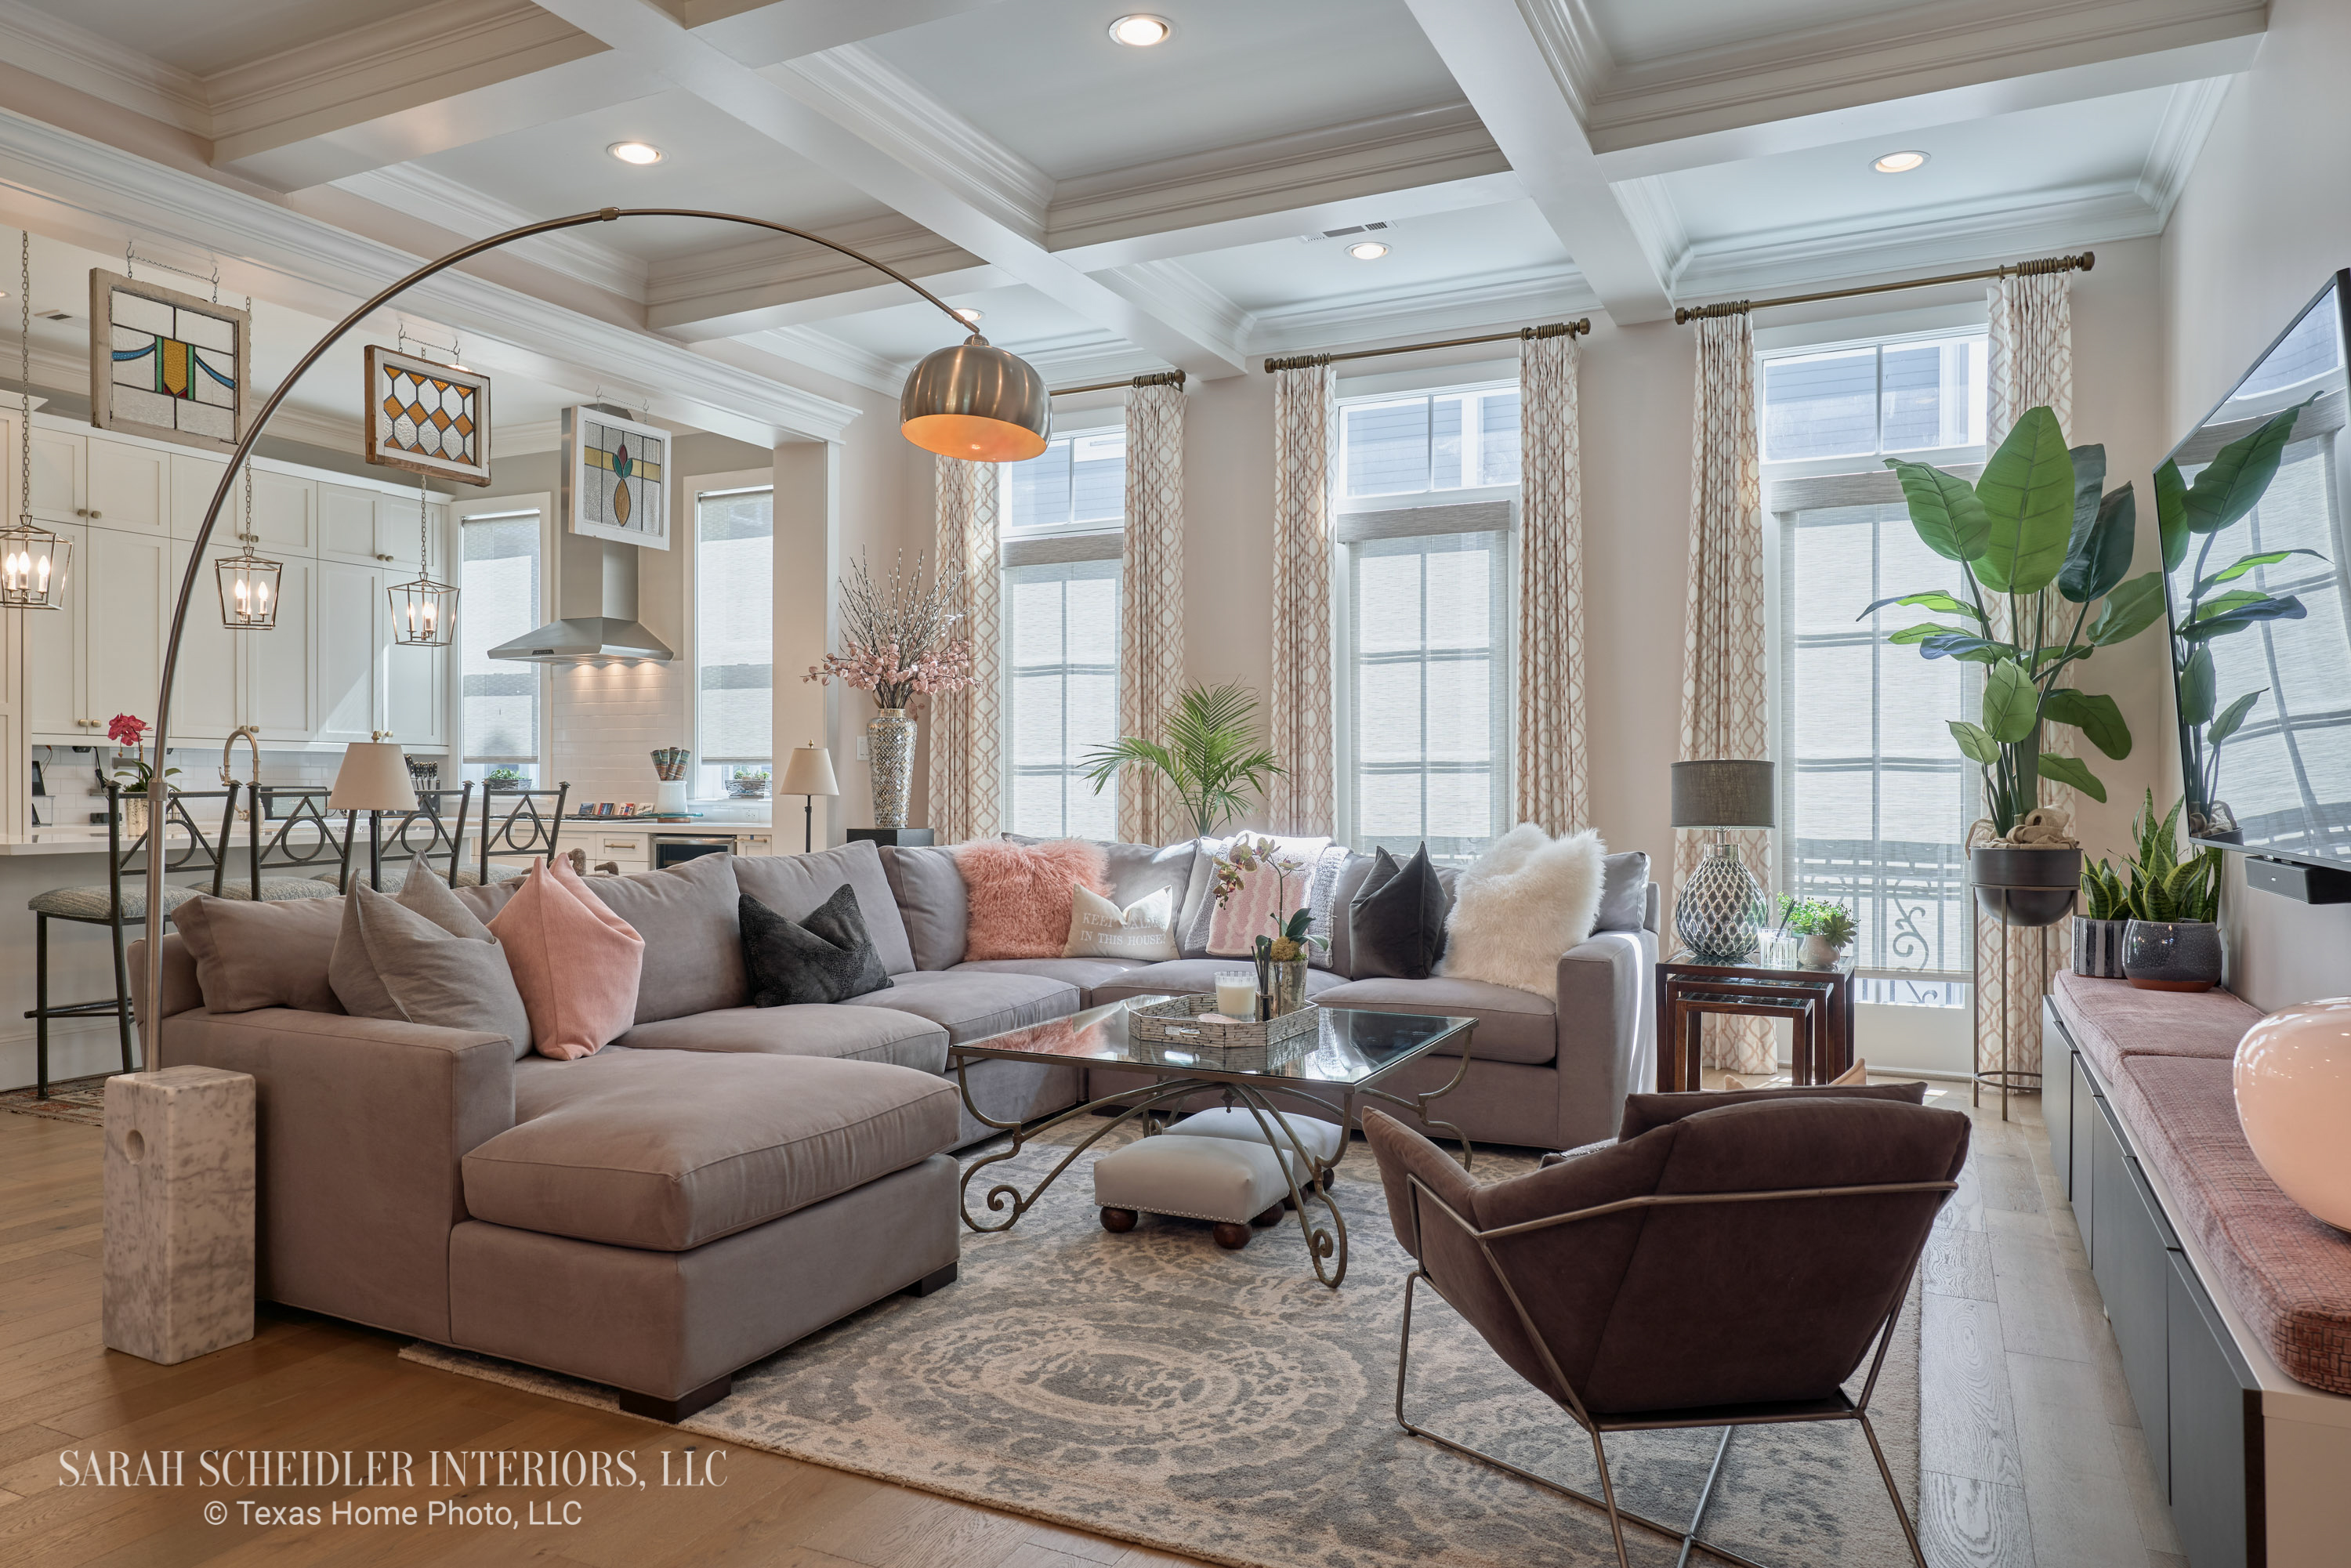 Open-Concept Living Room and White Kitchen Design with Pops of Color and Custom Jaclyn Smith Constance Cameo Drapes